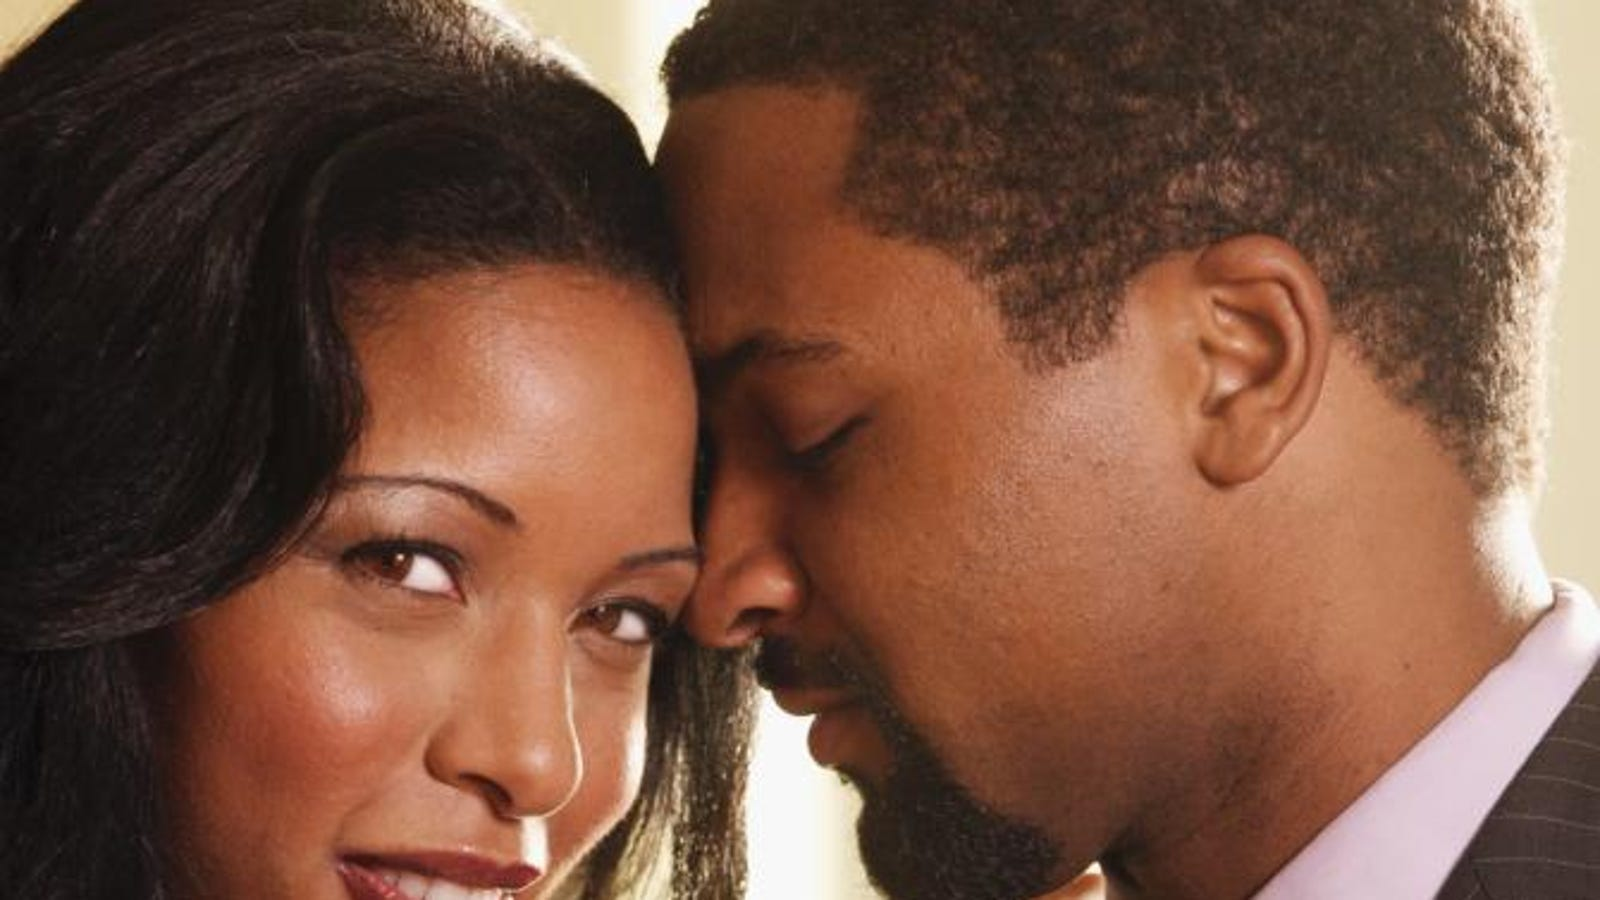 Your Bestie Slept With Your 'Friend With Benefits'? Girl, Please